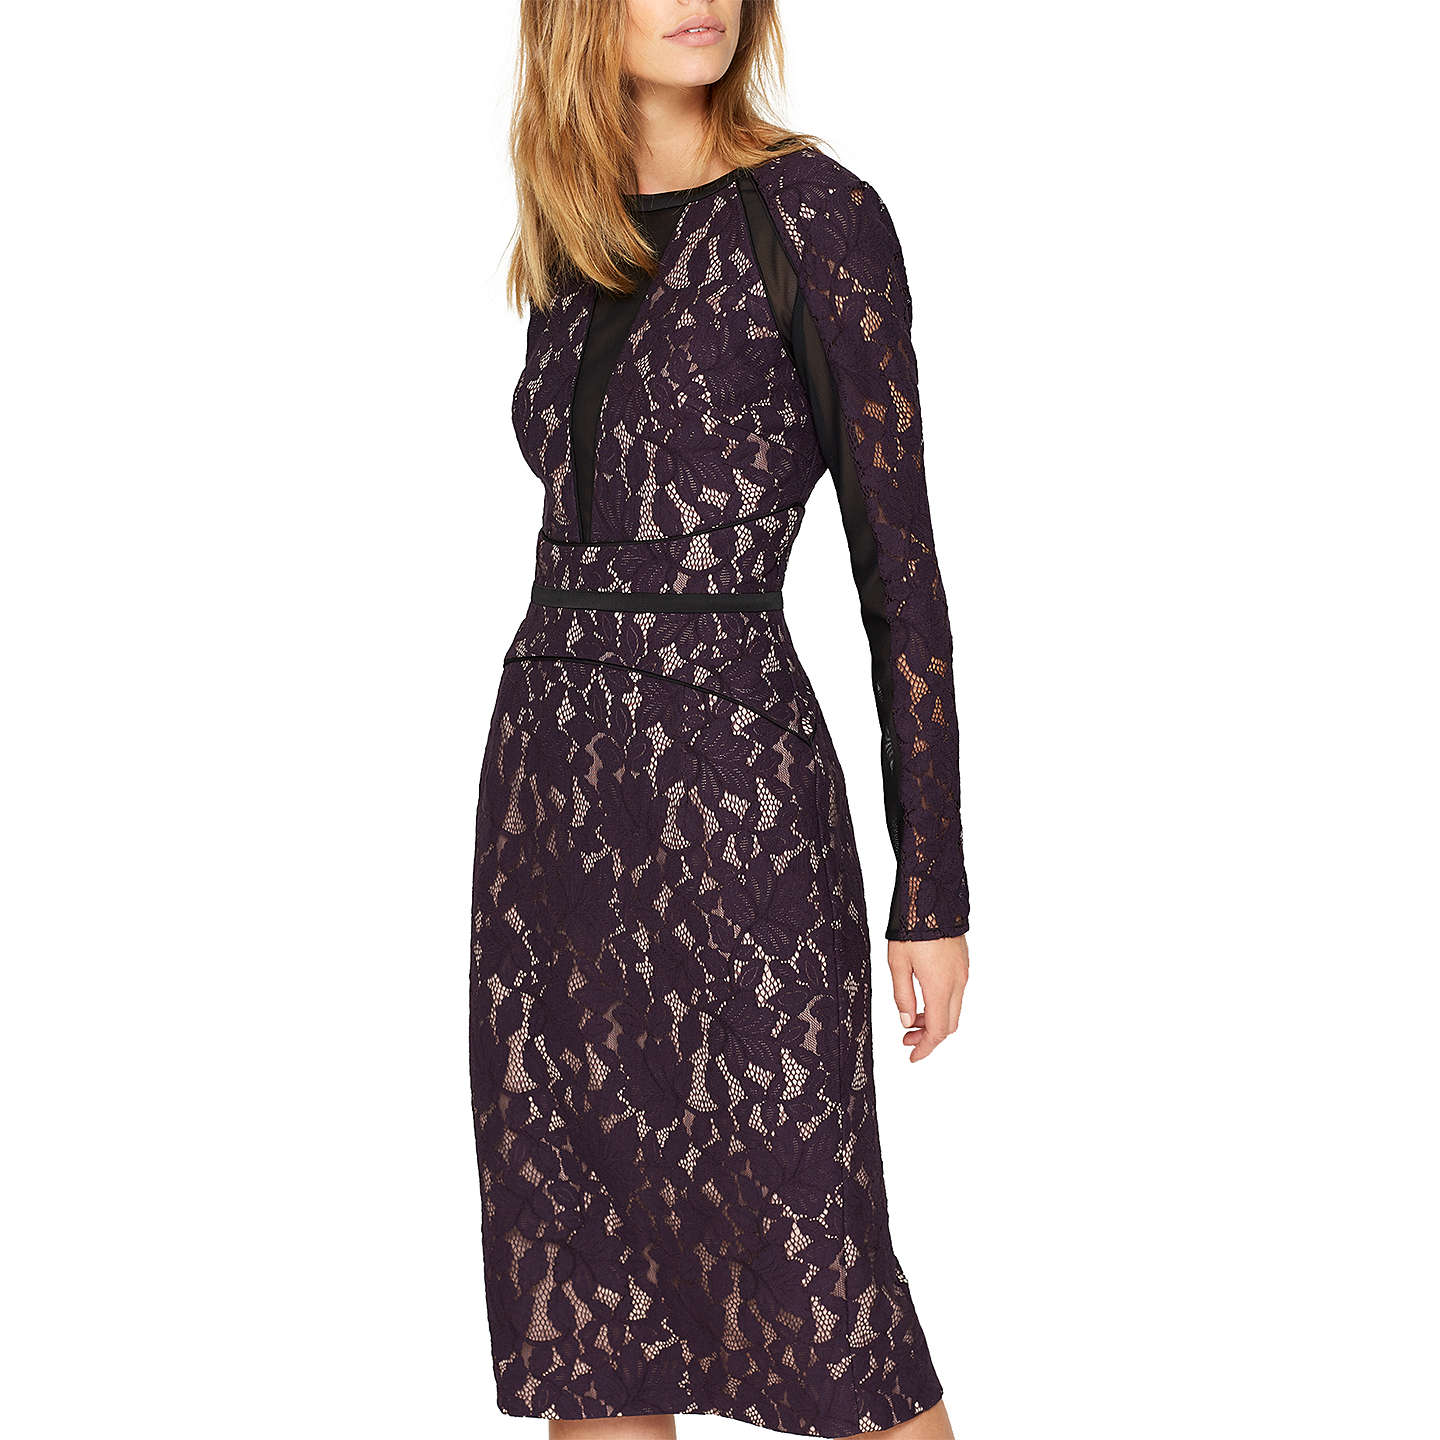 Damsel in a dress Dalia Lace Panel Dress, Aubergine/Black at John Lewis